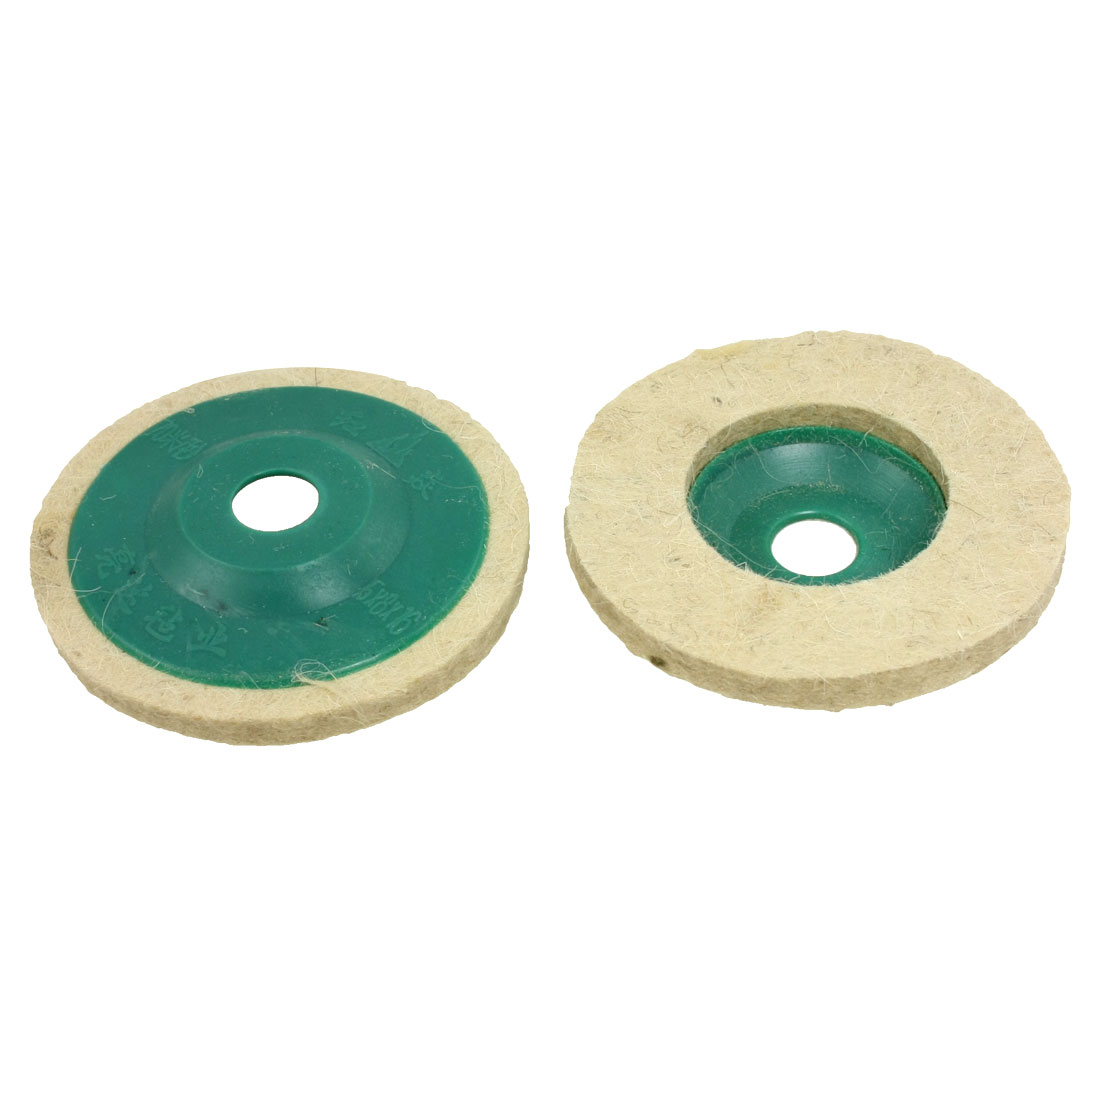 "Pair 3.7"" Outer Dia Wool Felt Polishing Wheel Sanding Disc for Metal"